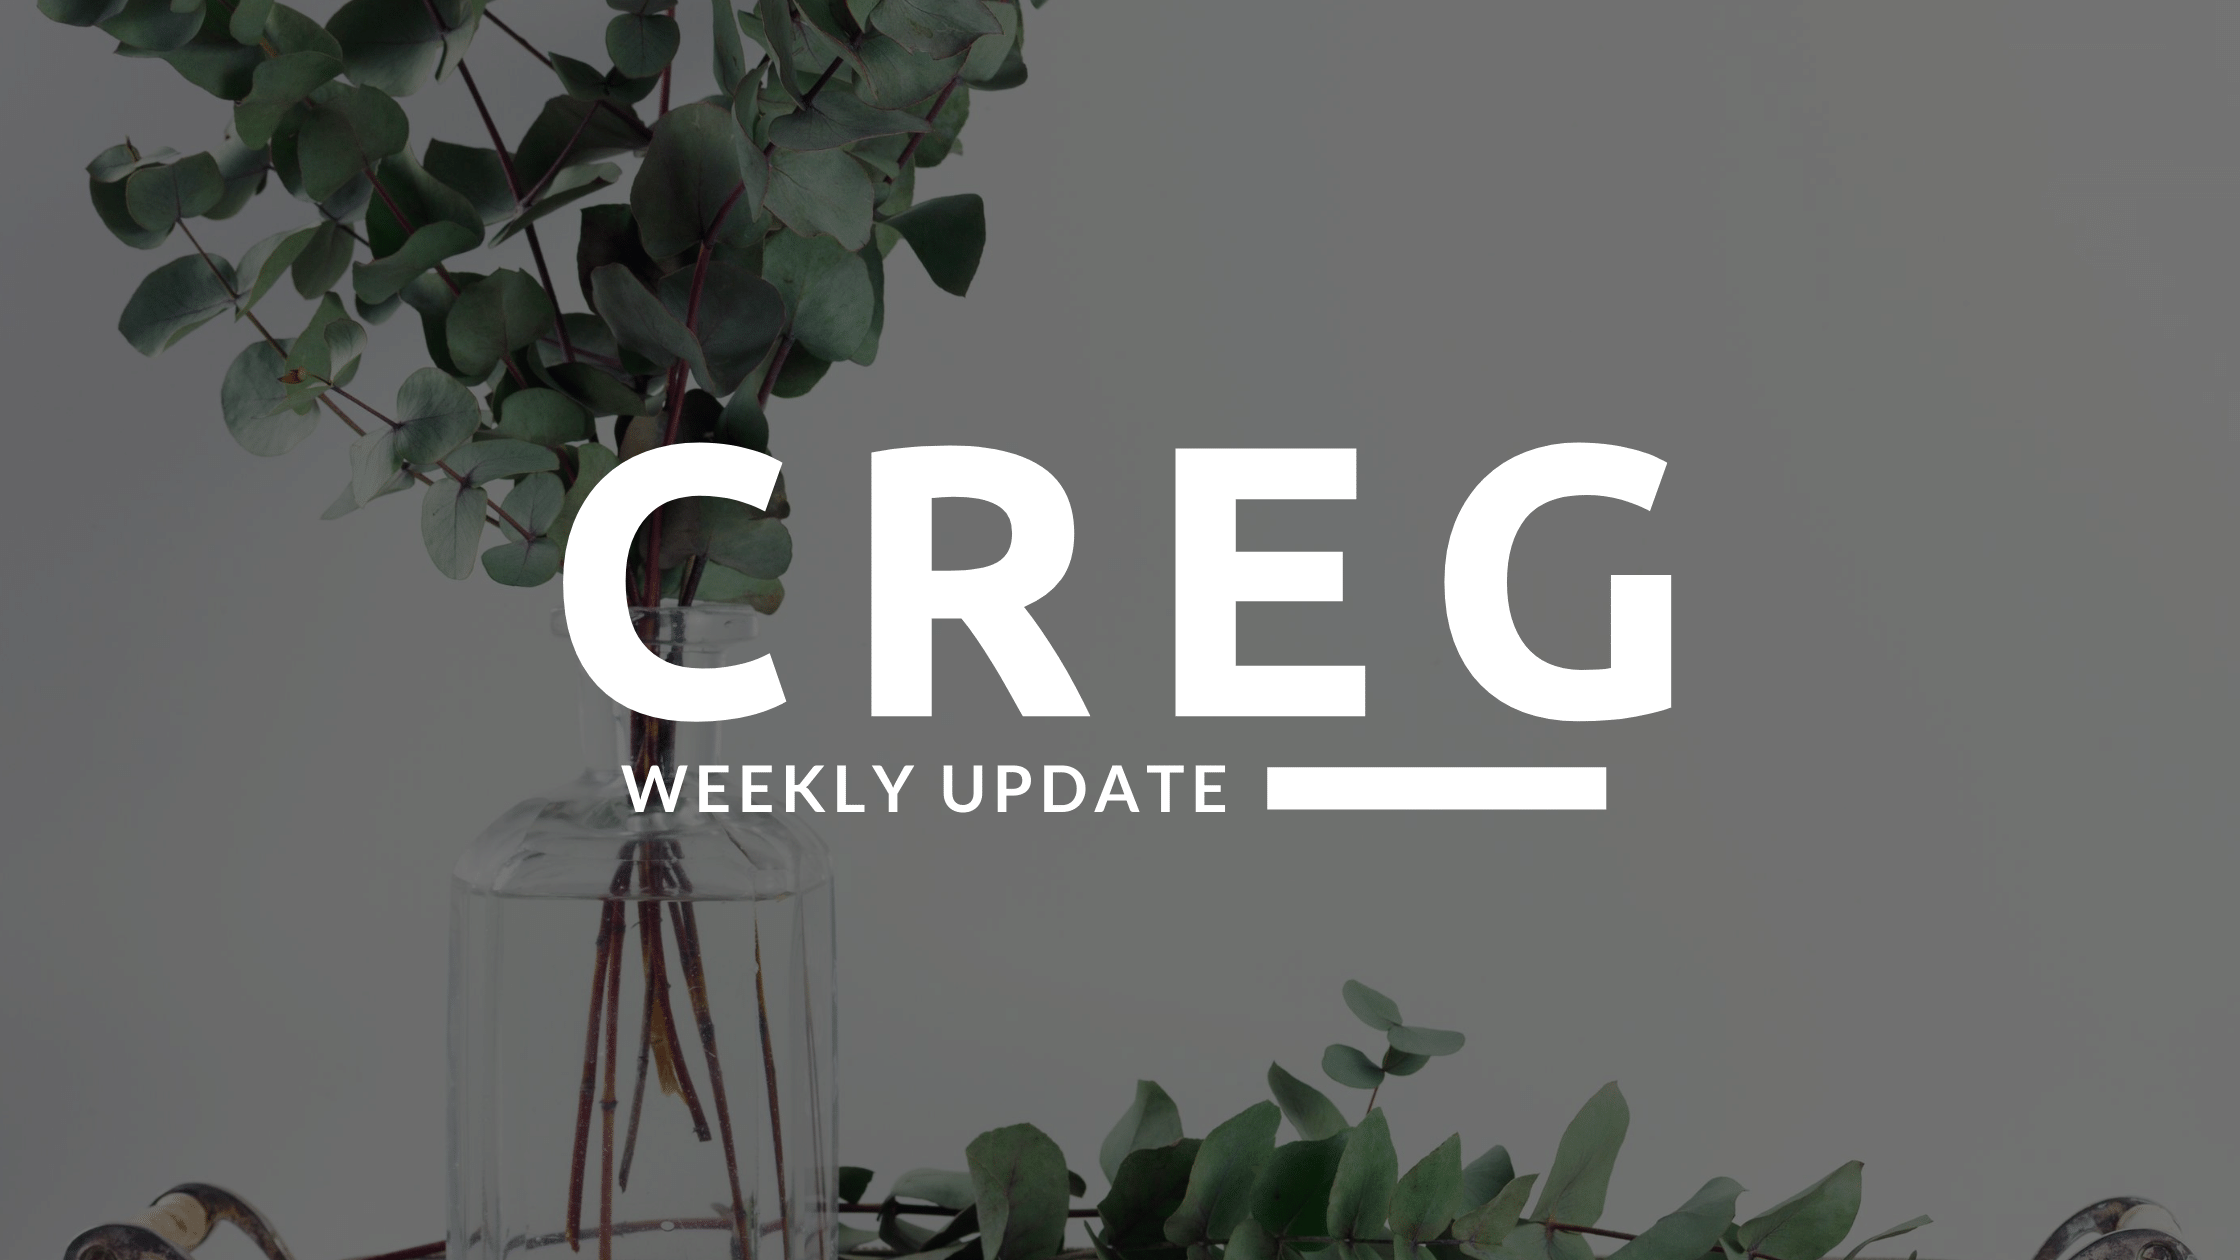 CREG Weekly Real Estate Update!